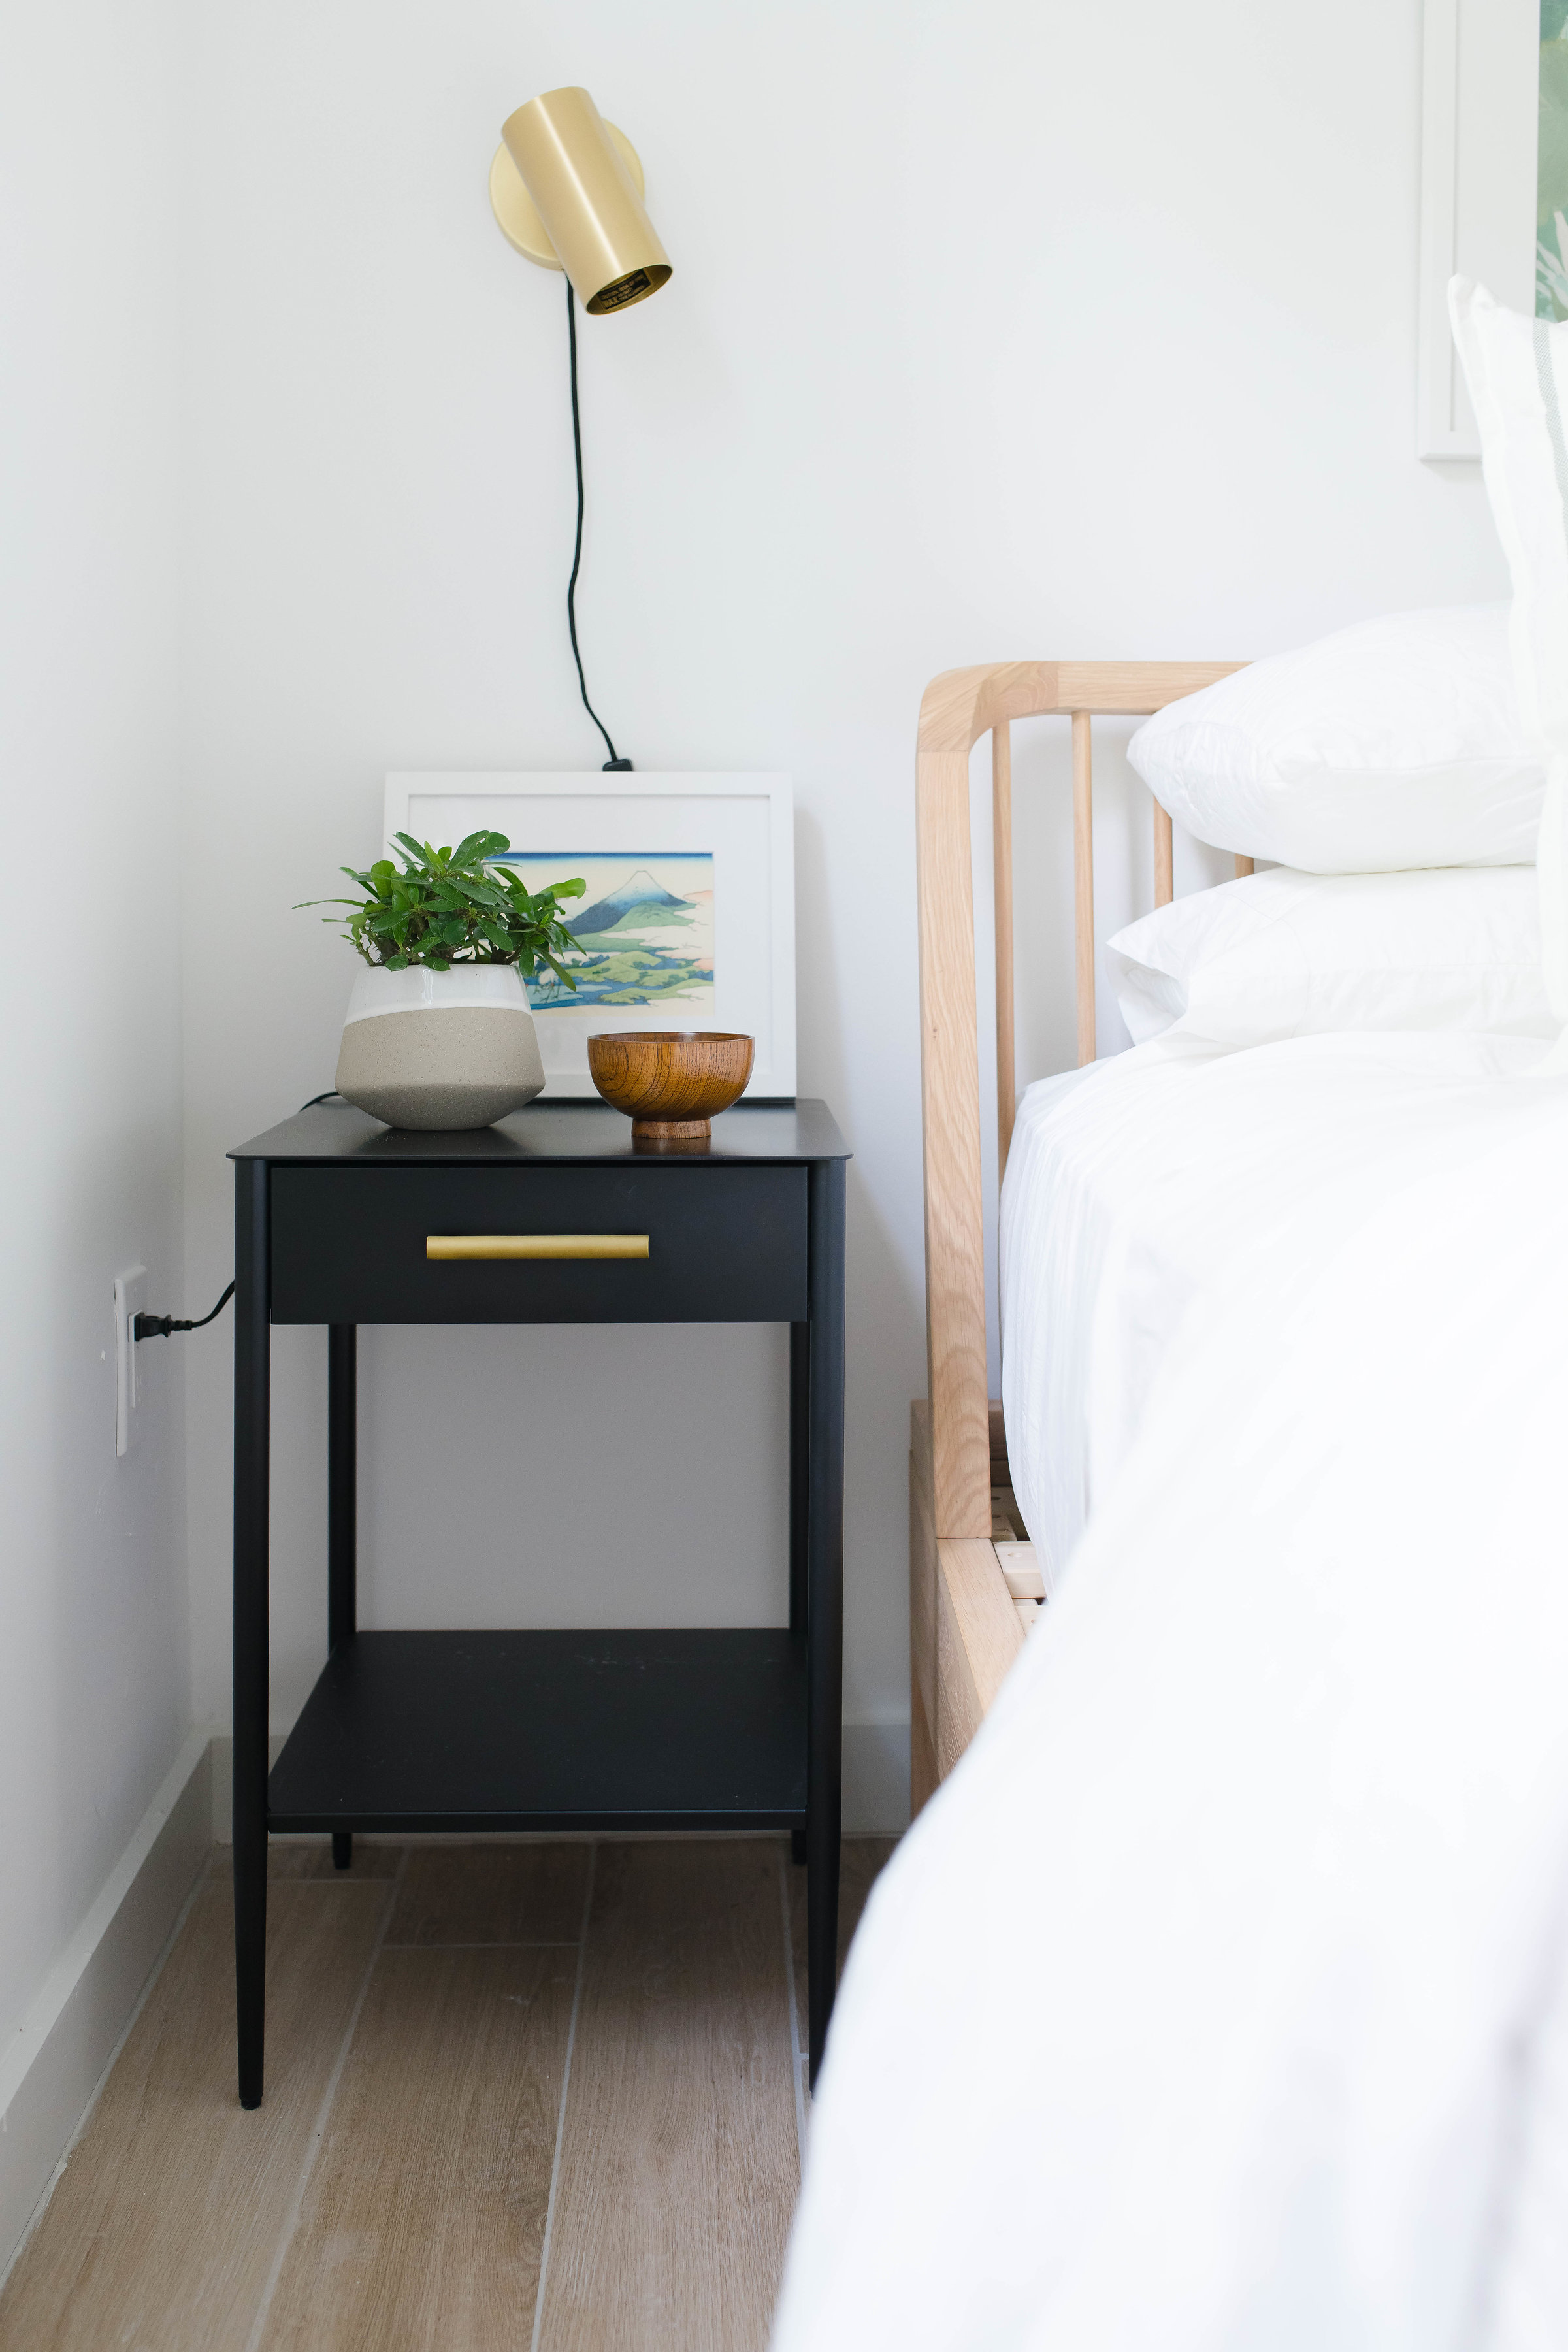 black nightstand with brass sconce - the habitat collective interior design - #projectpeachy